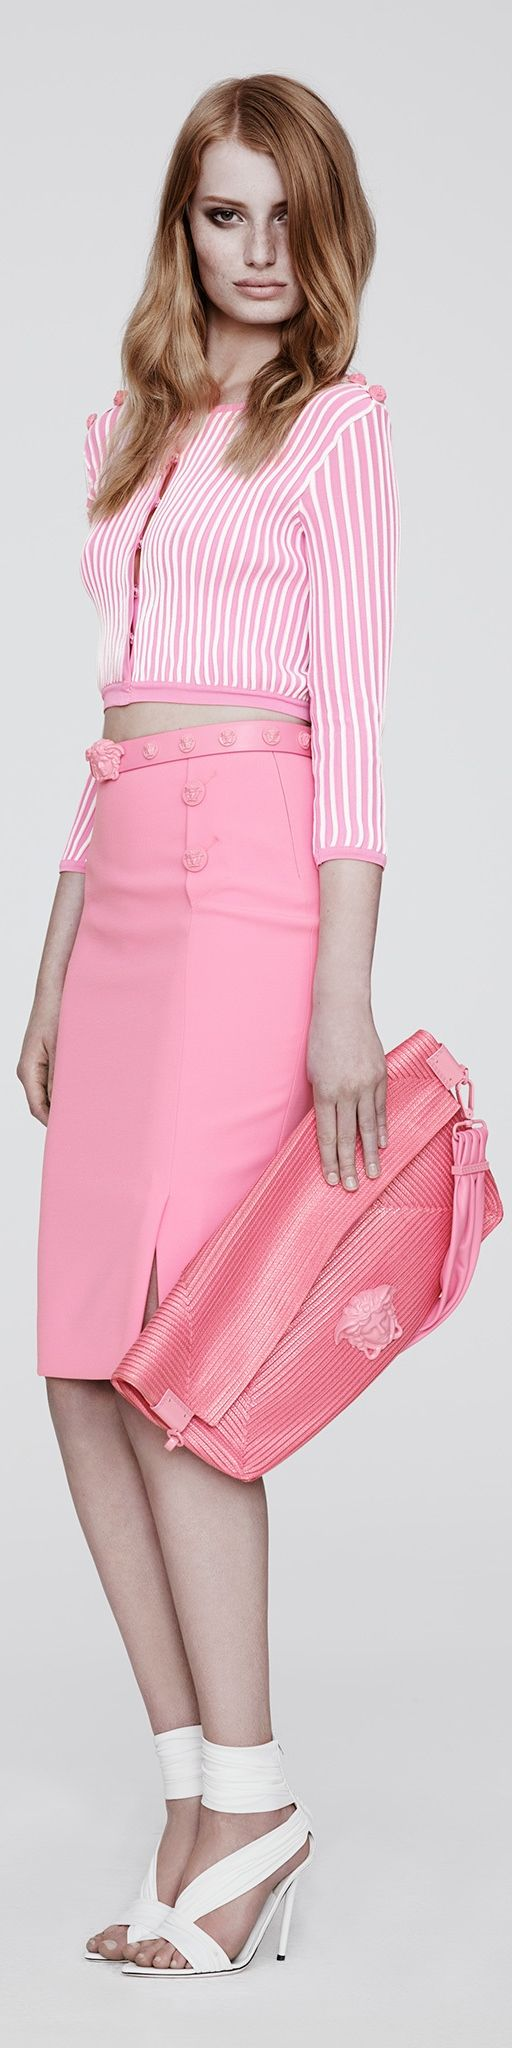 Versace Resort 2014 shows us Pretty In Pink for next Spring Season!